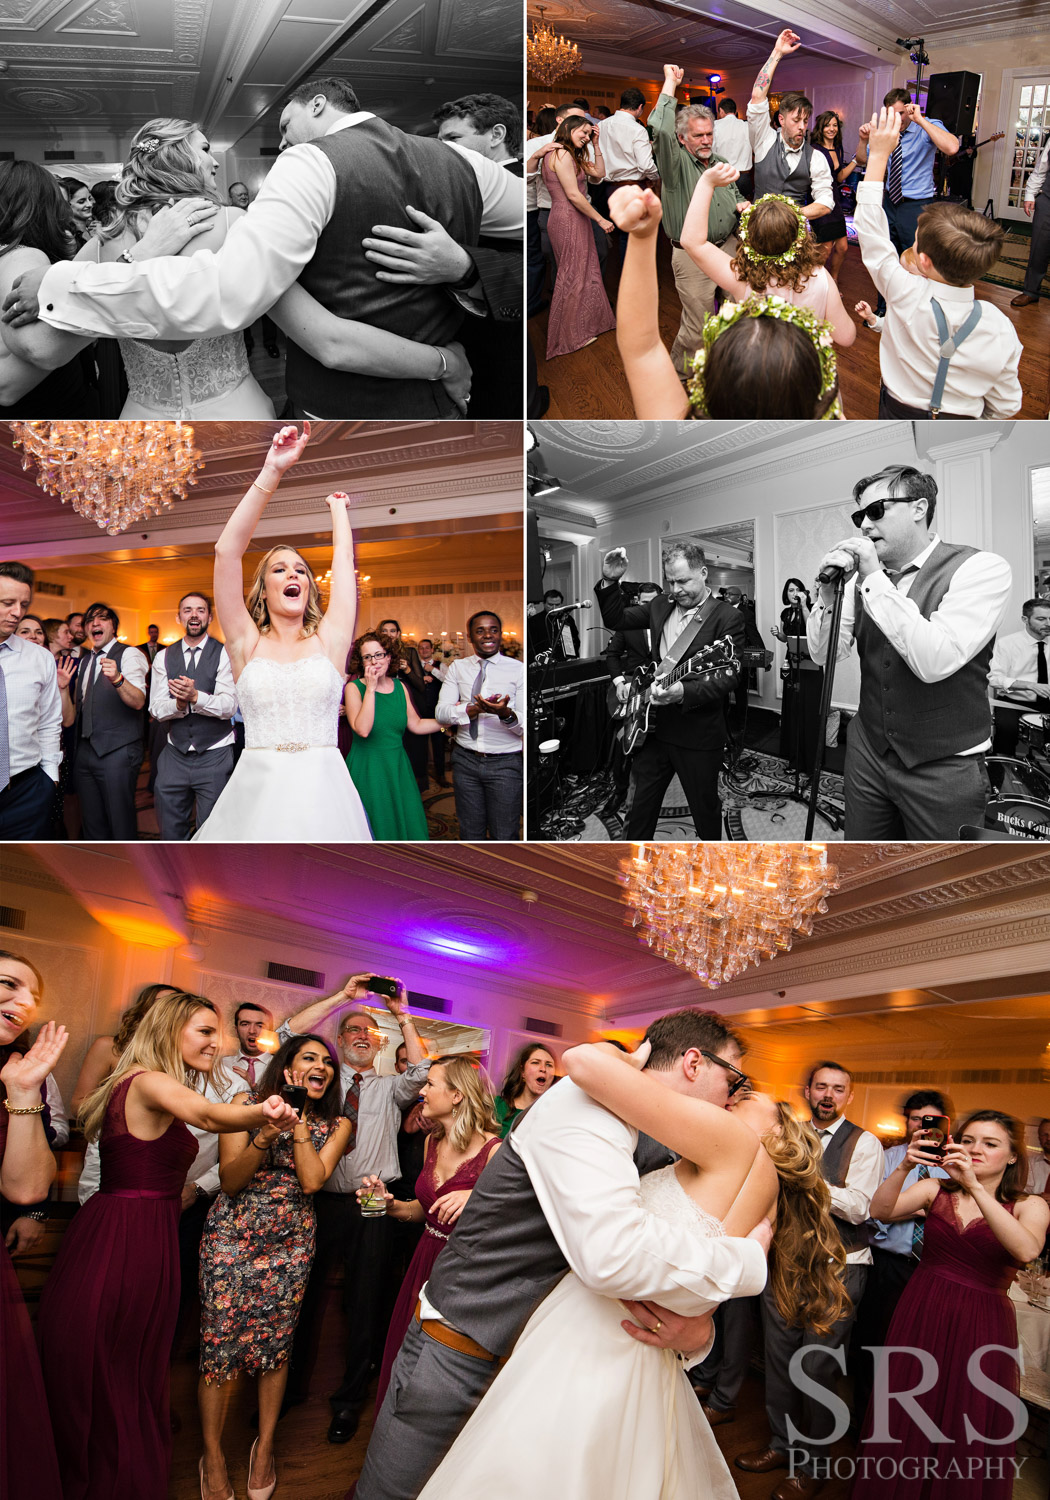 15_srs_photography_sara_stadtmiller_asbury_park_wedding_photography_nj_wedding_photographer_monmouth_county_wedding_photographer_red_bank_wedding_molly_pitcher_wedding_brian_kirk